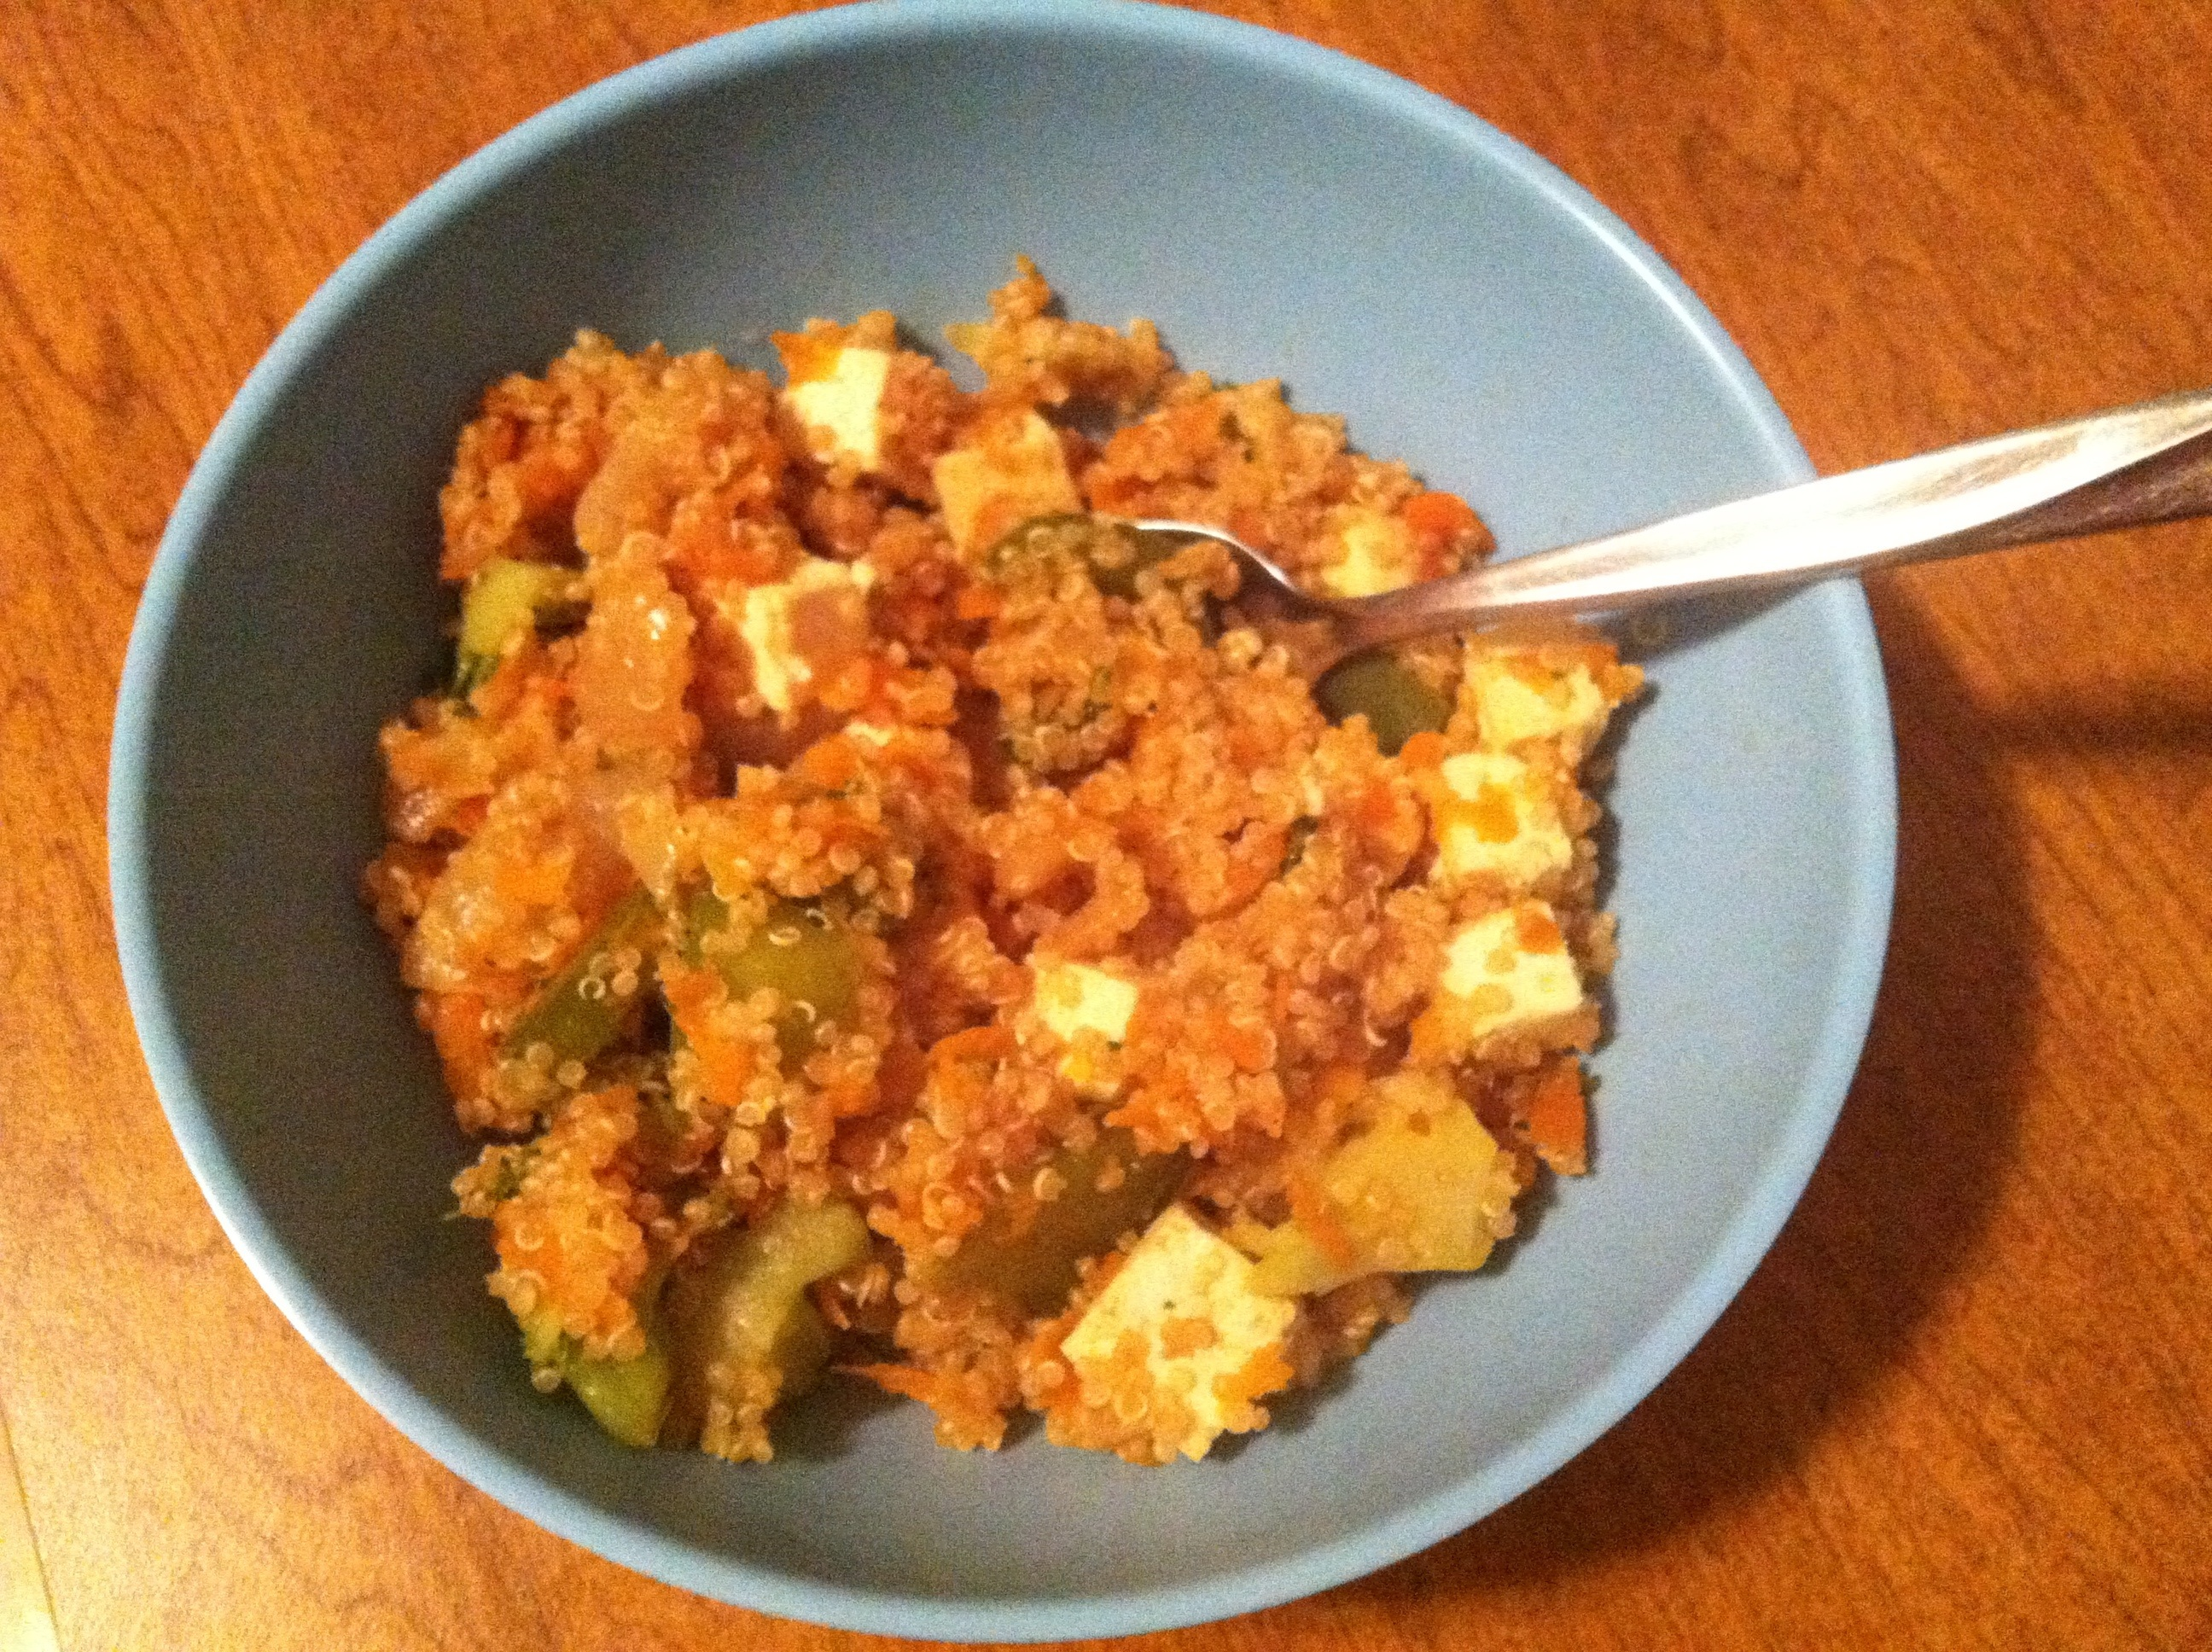 Dinner time! Quinoa & Tofu Veggie Stir Fry